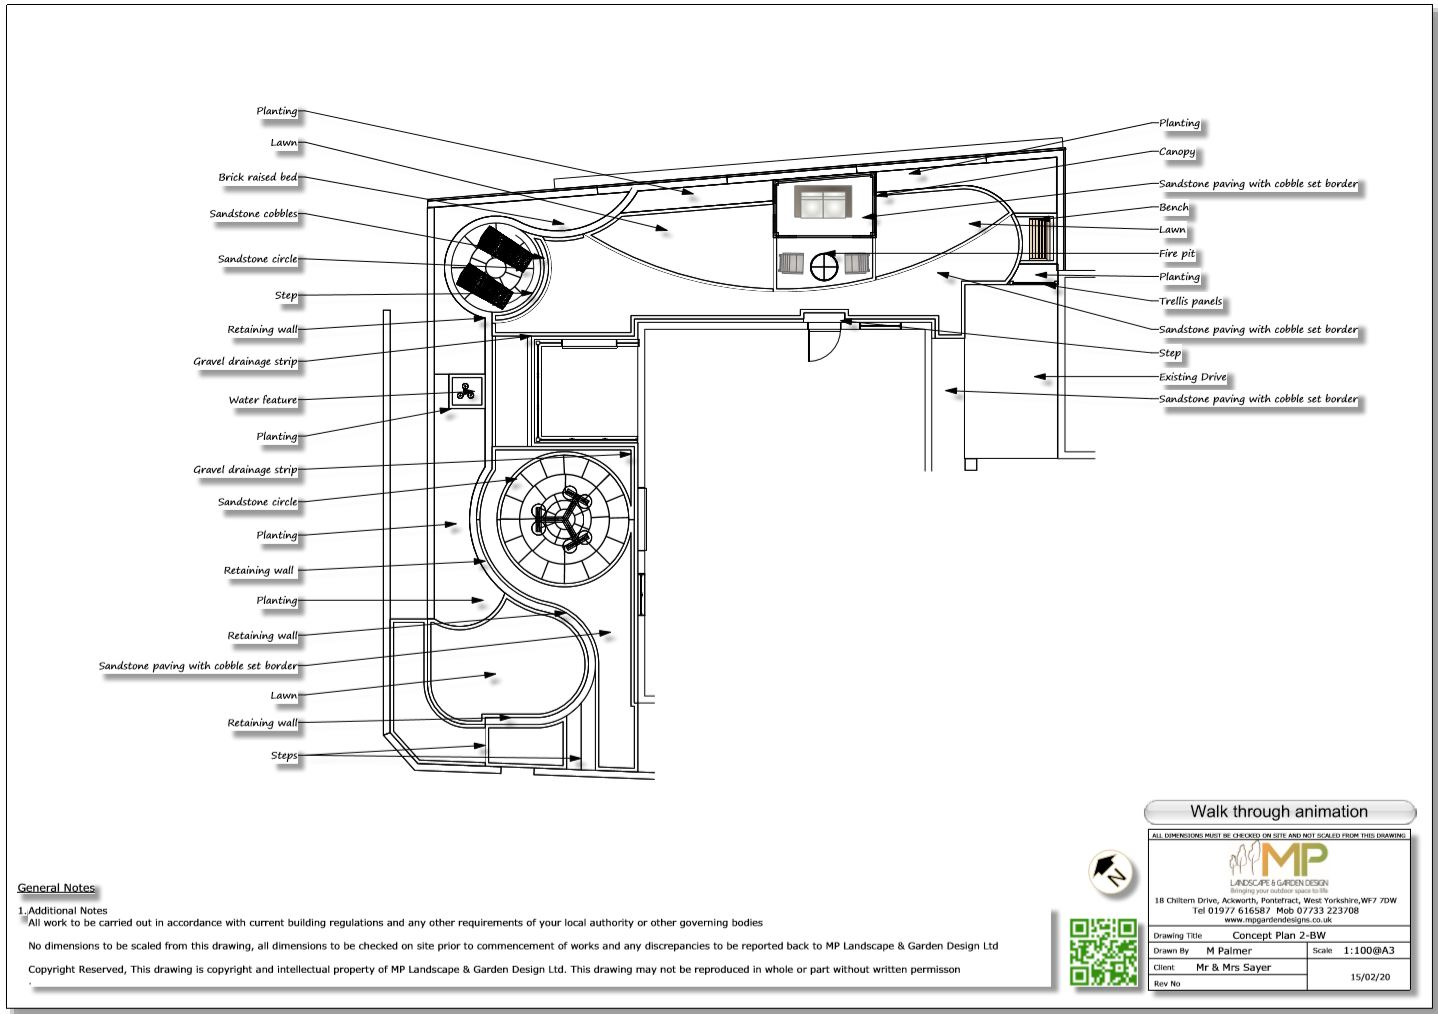 5. Concept plan for a property in Castelford.